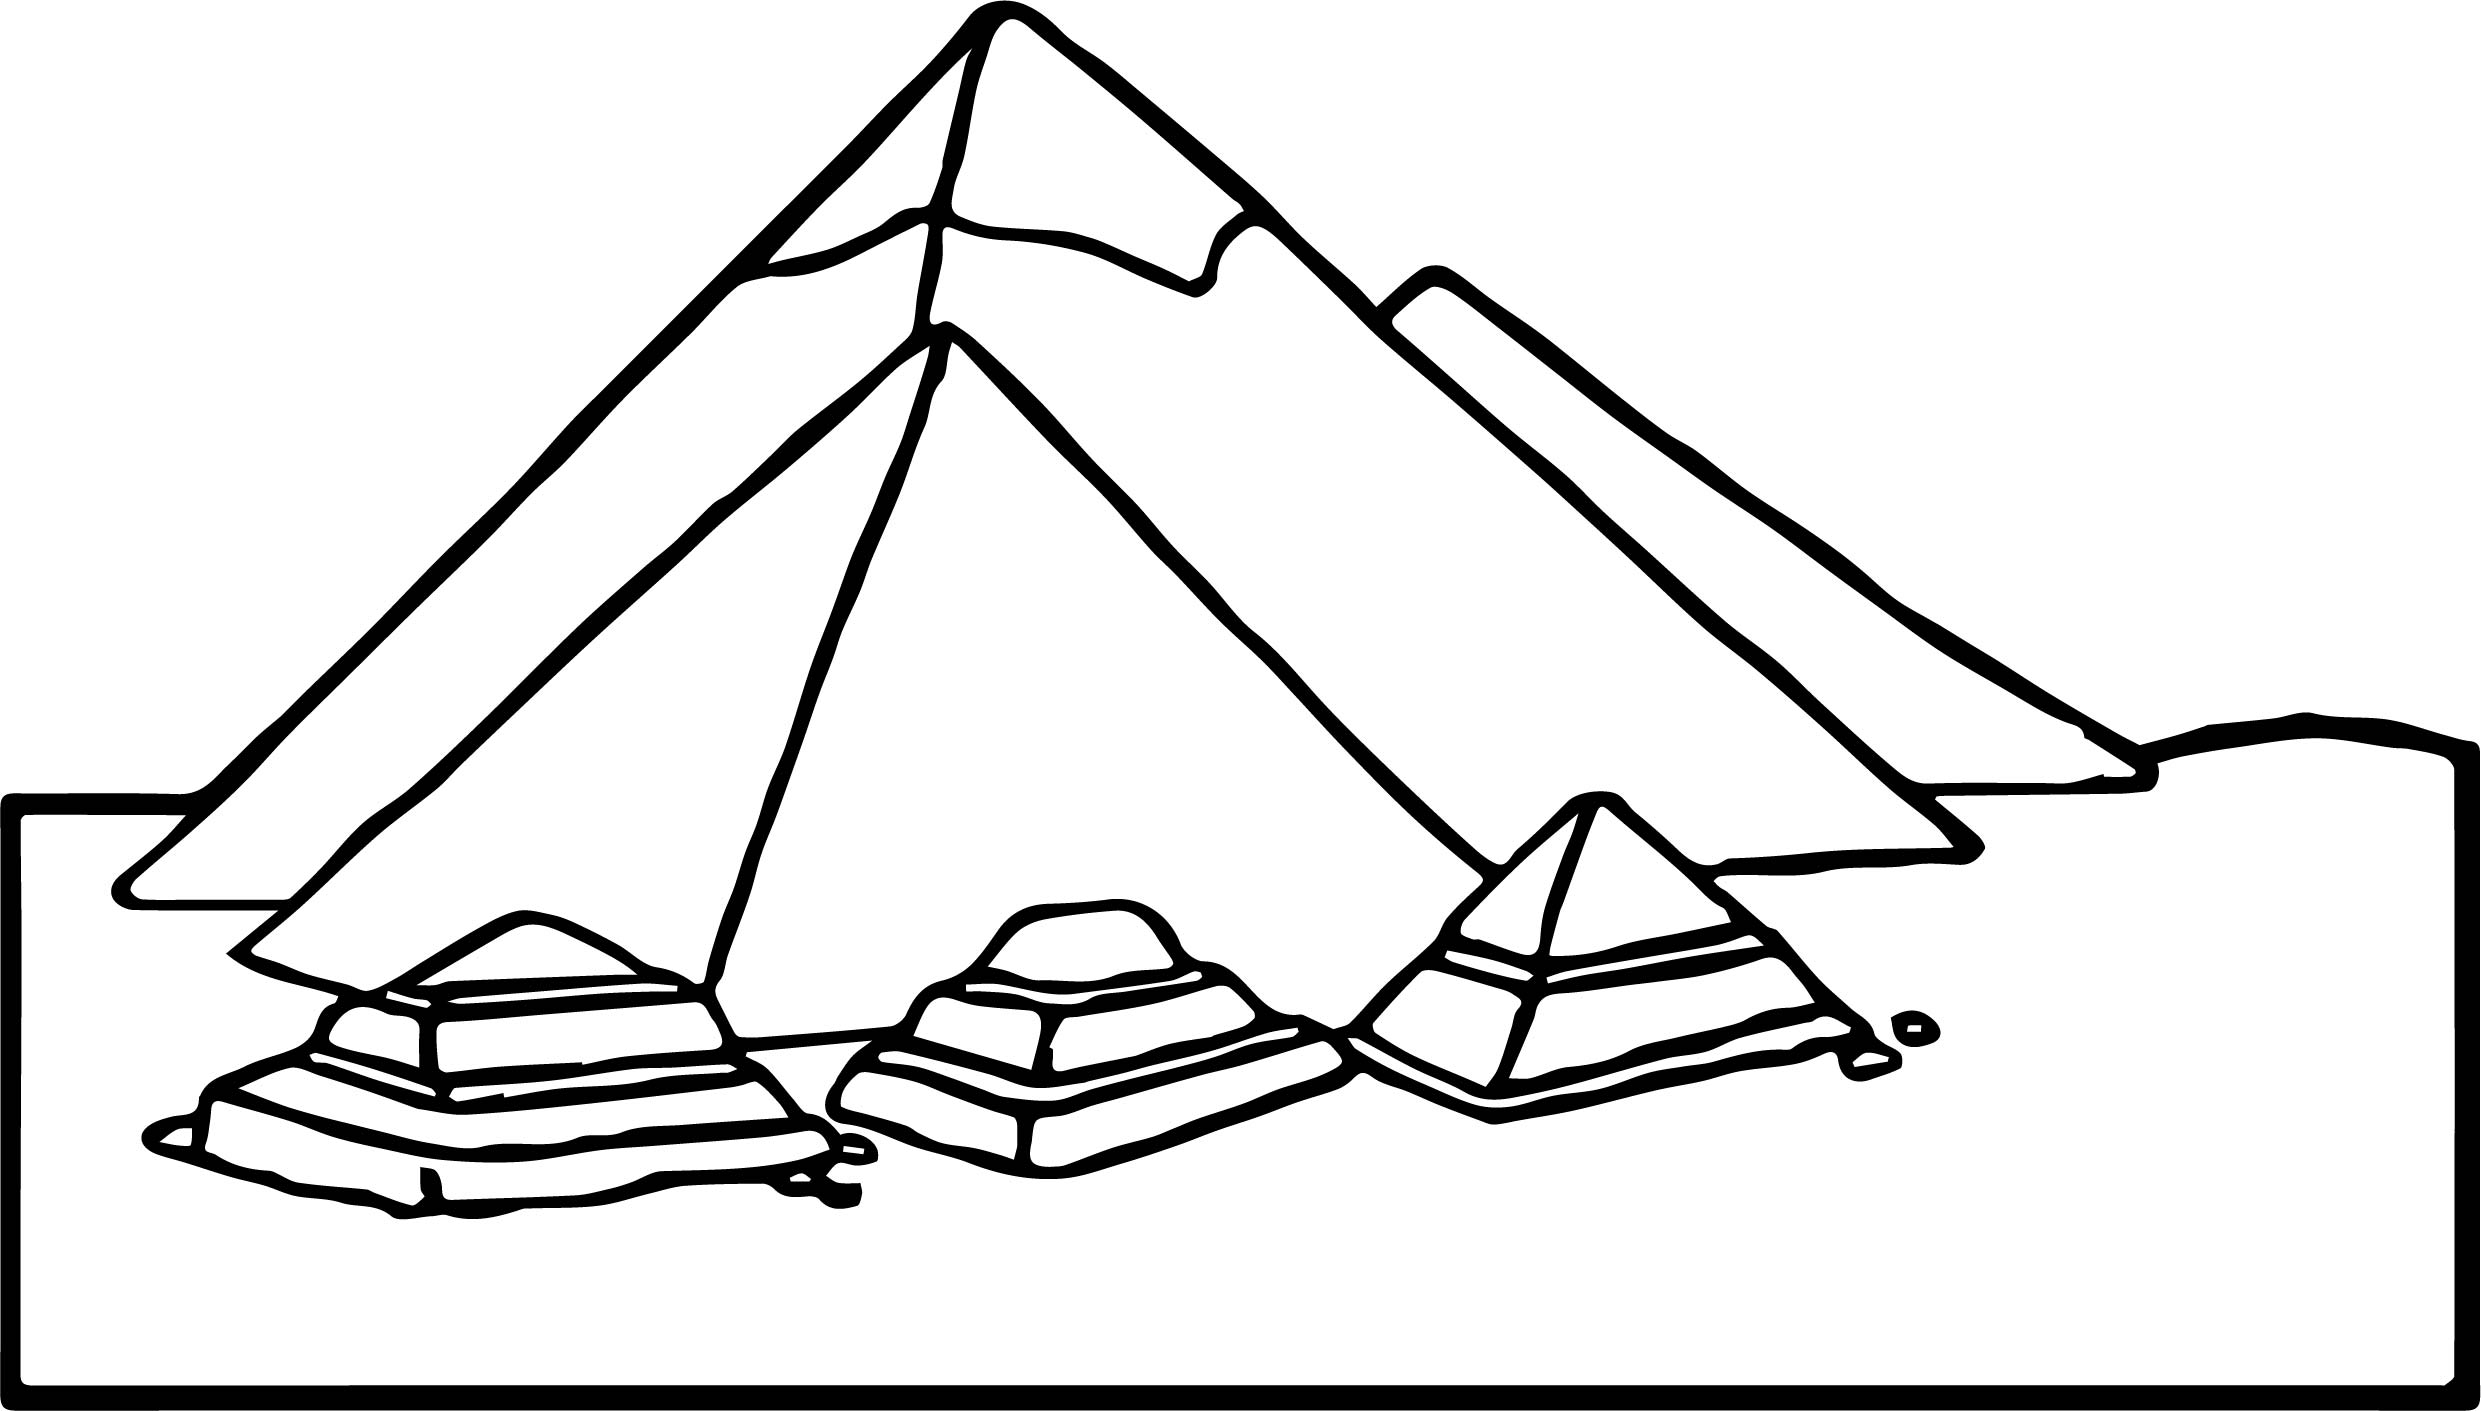 Uncategorized Pyramid Coloring Page new ancient egypt pyramid coloring page wecoloringpage page